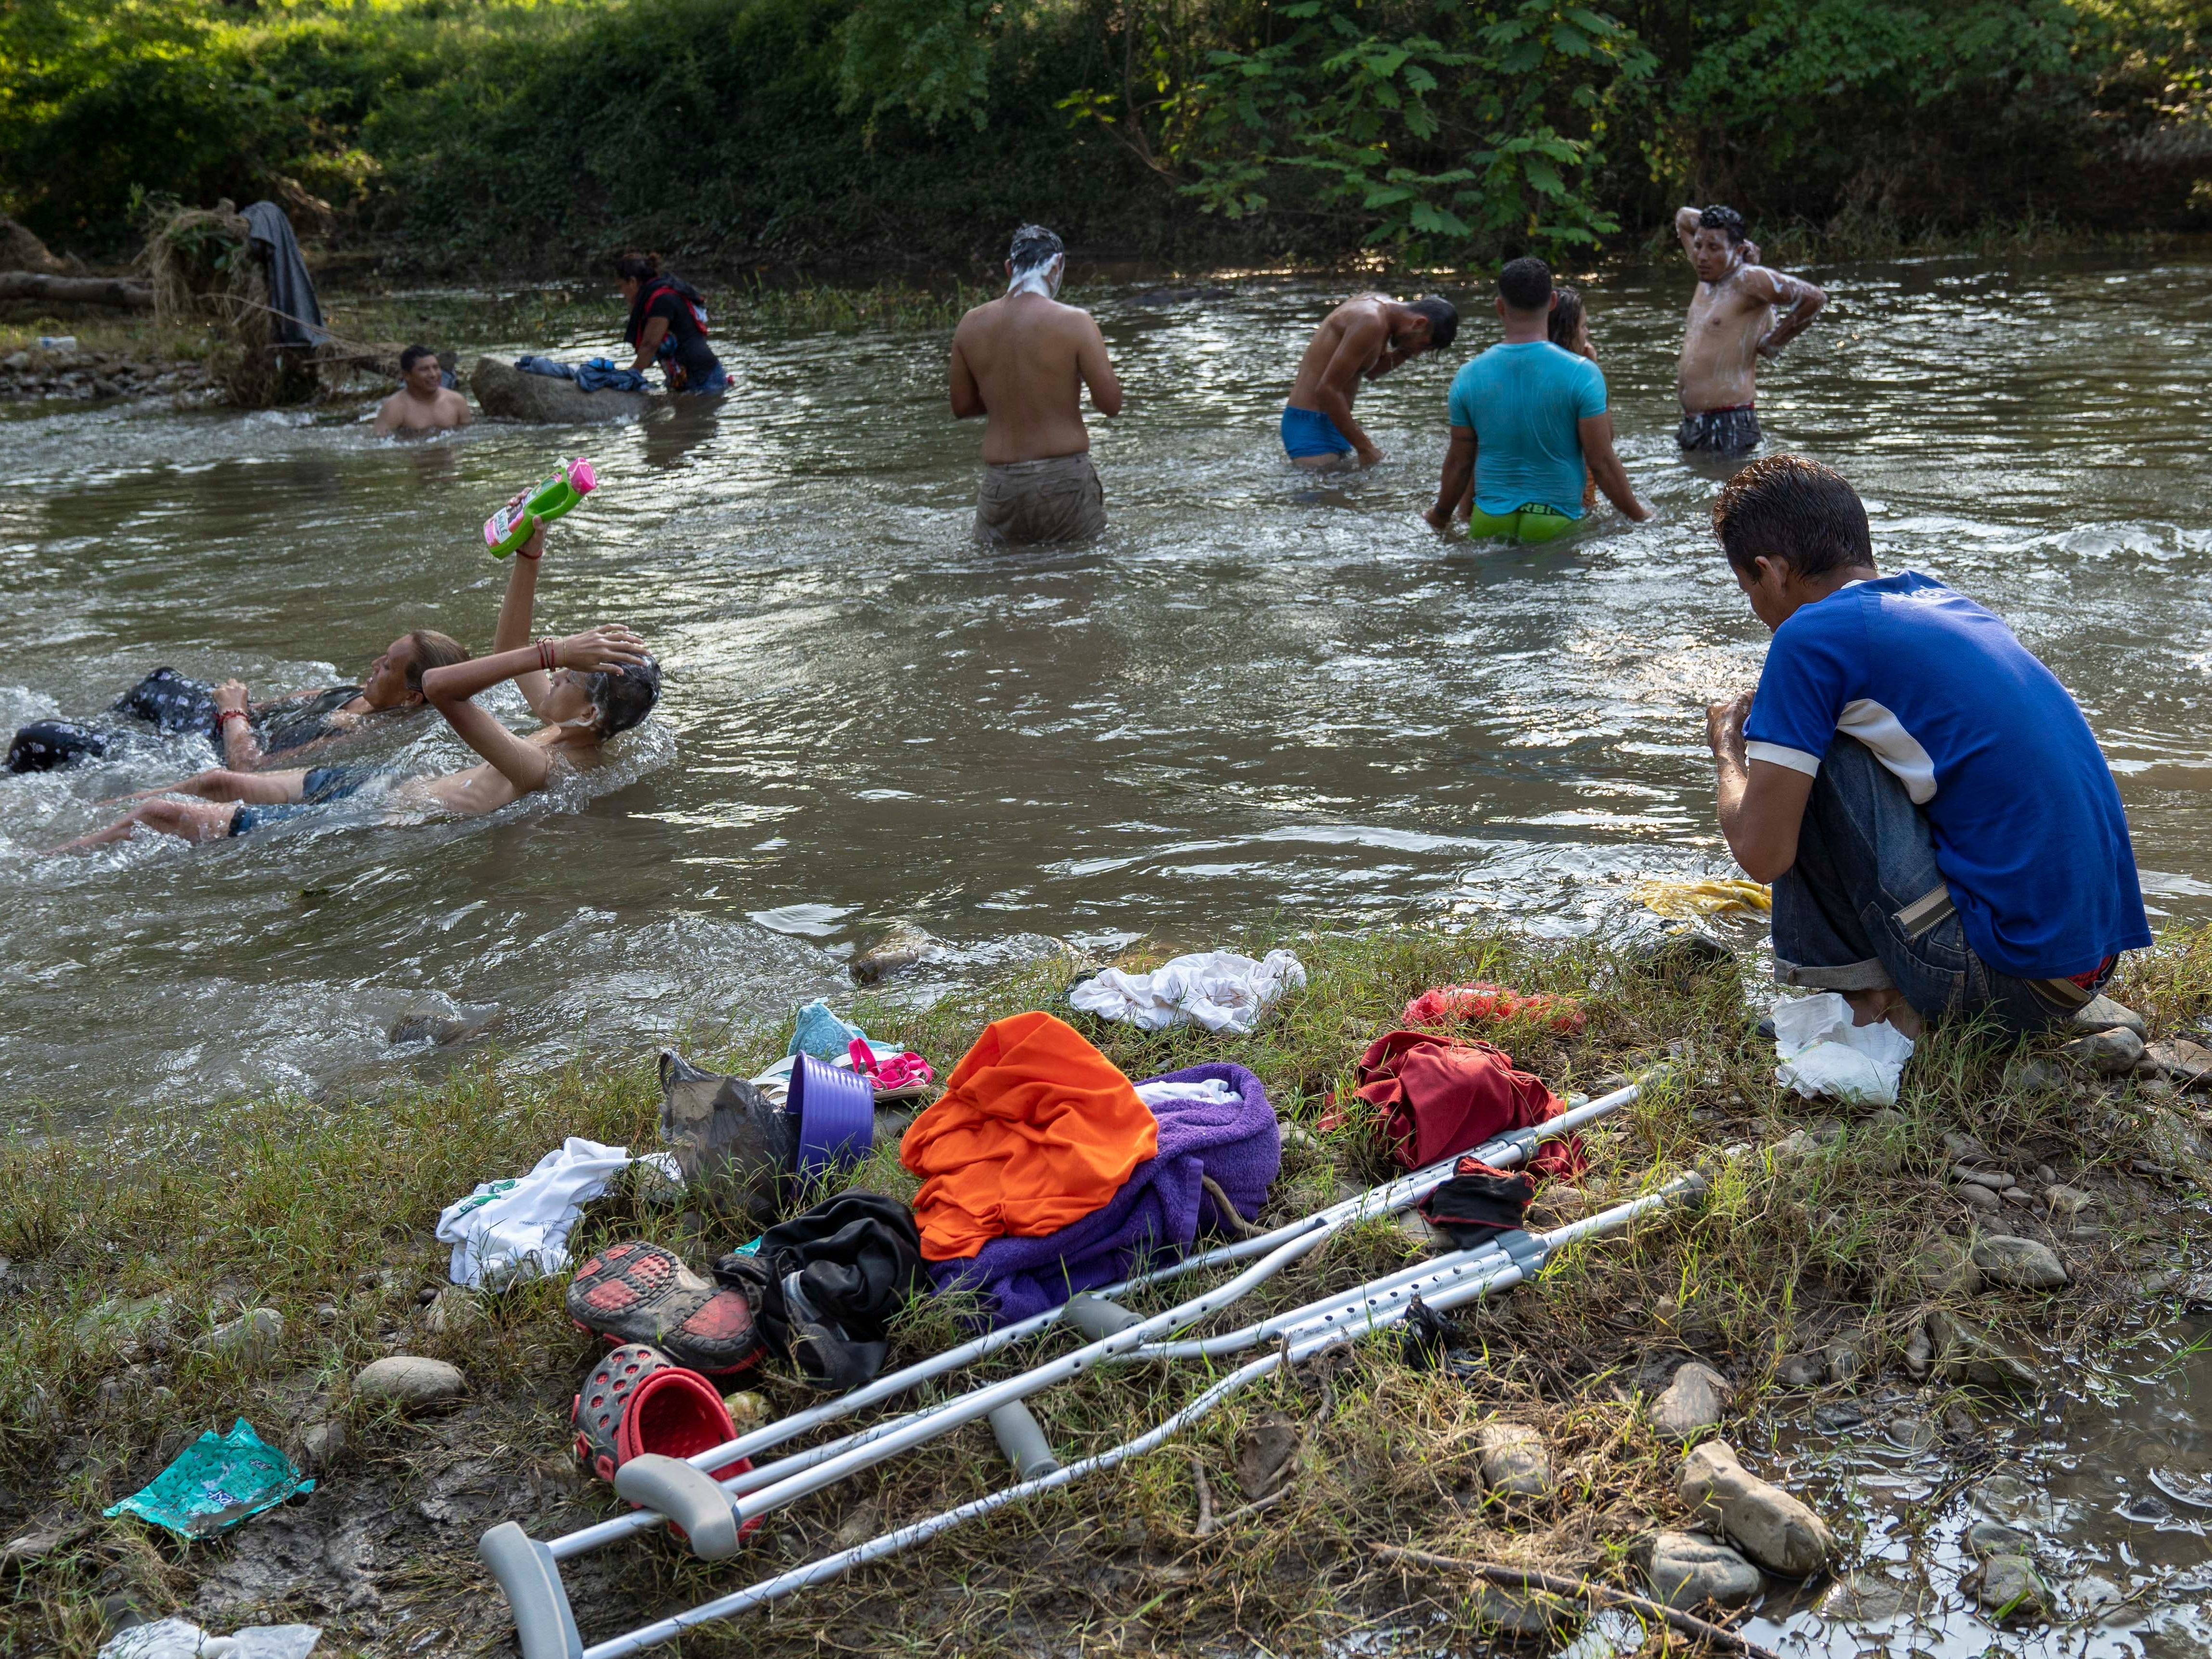 Bathing in the river offers a little relief from a day of walking in the oppressive heat for some of the thousands of migrants in the caravan on Oct. 27, 2018.